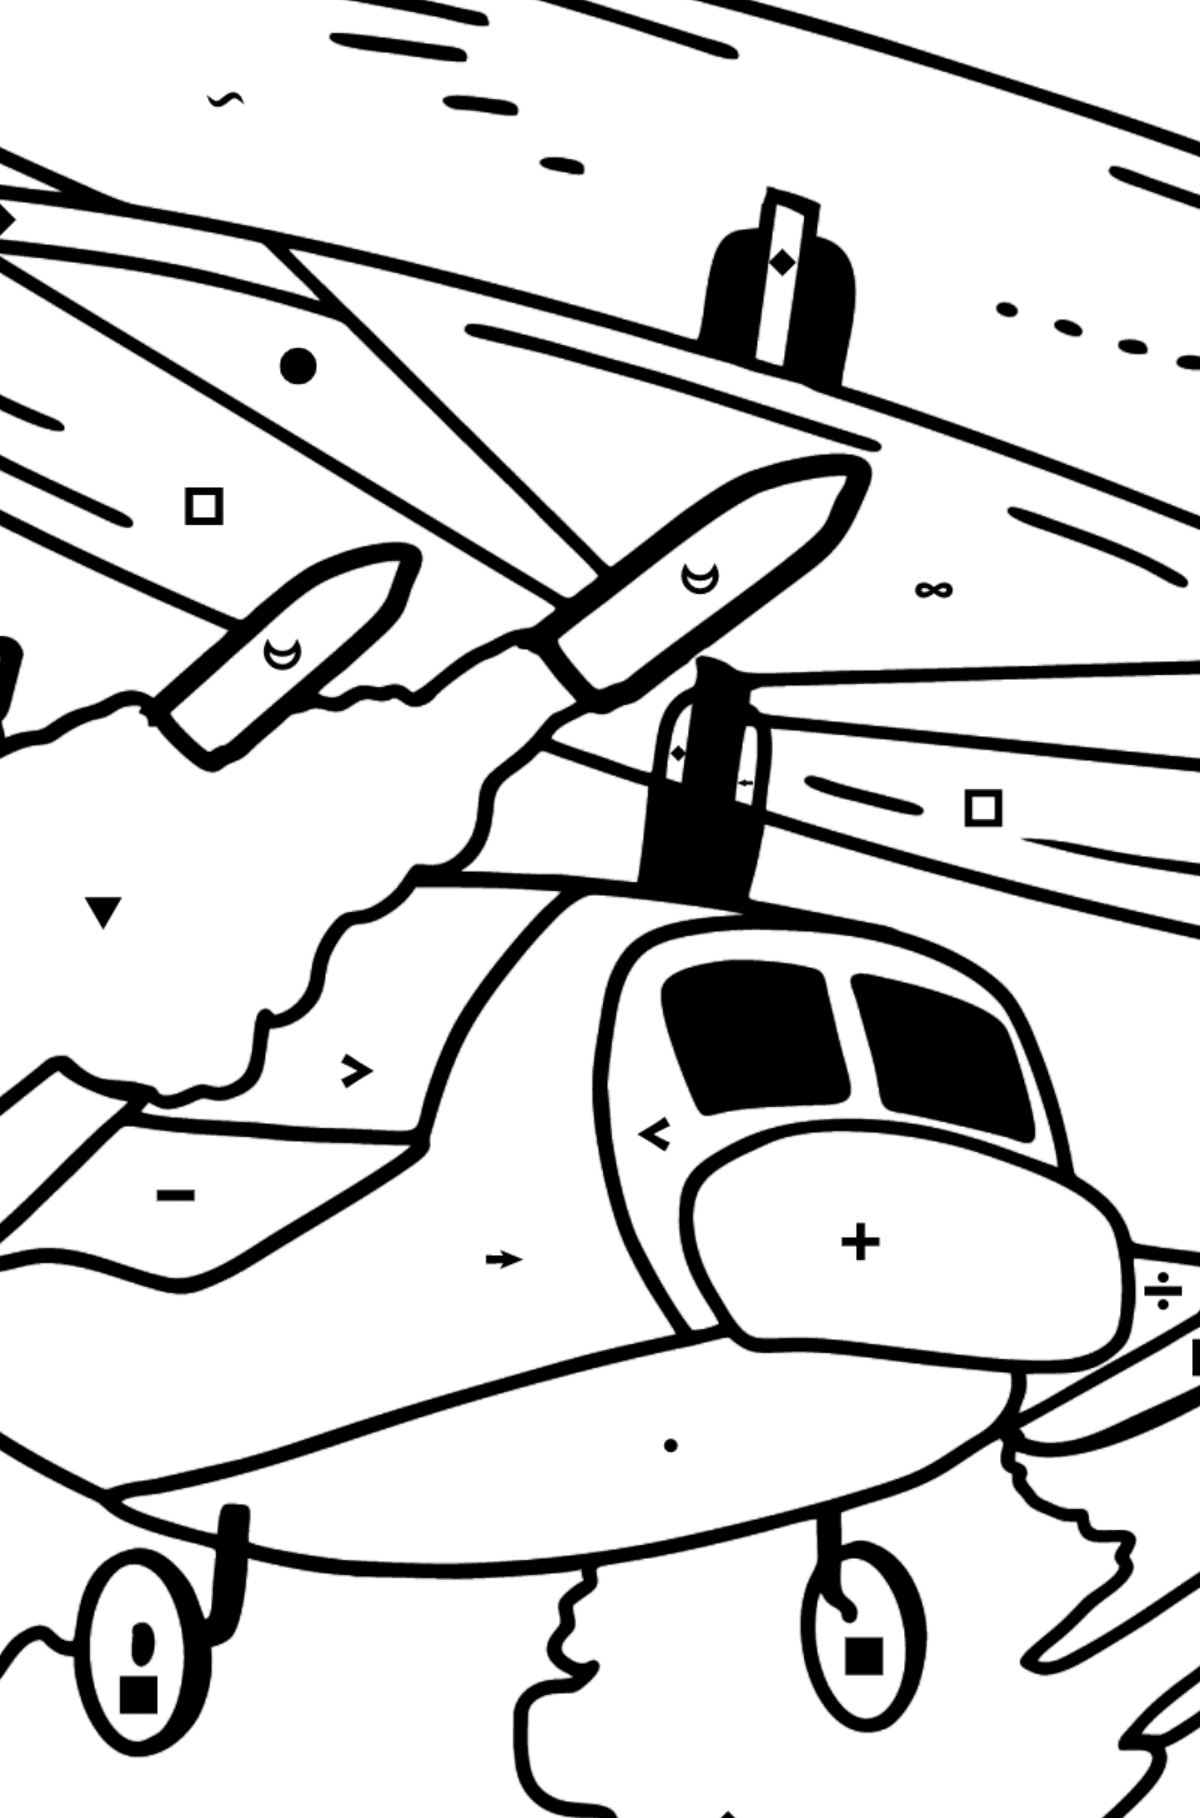 Coloring Page - A Military Helicopter - Coloring by Symbols for Kids